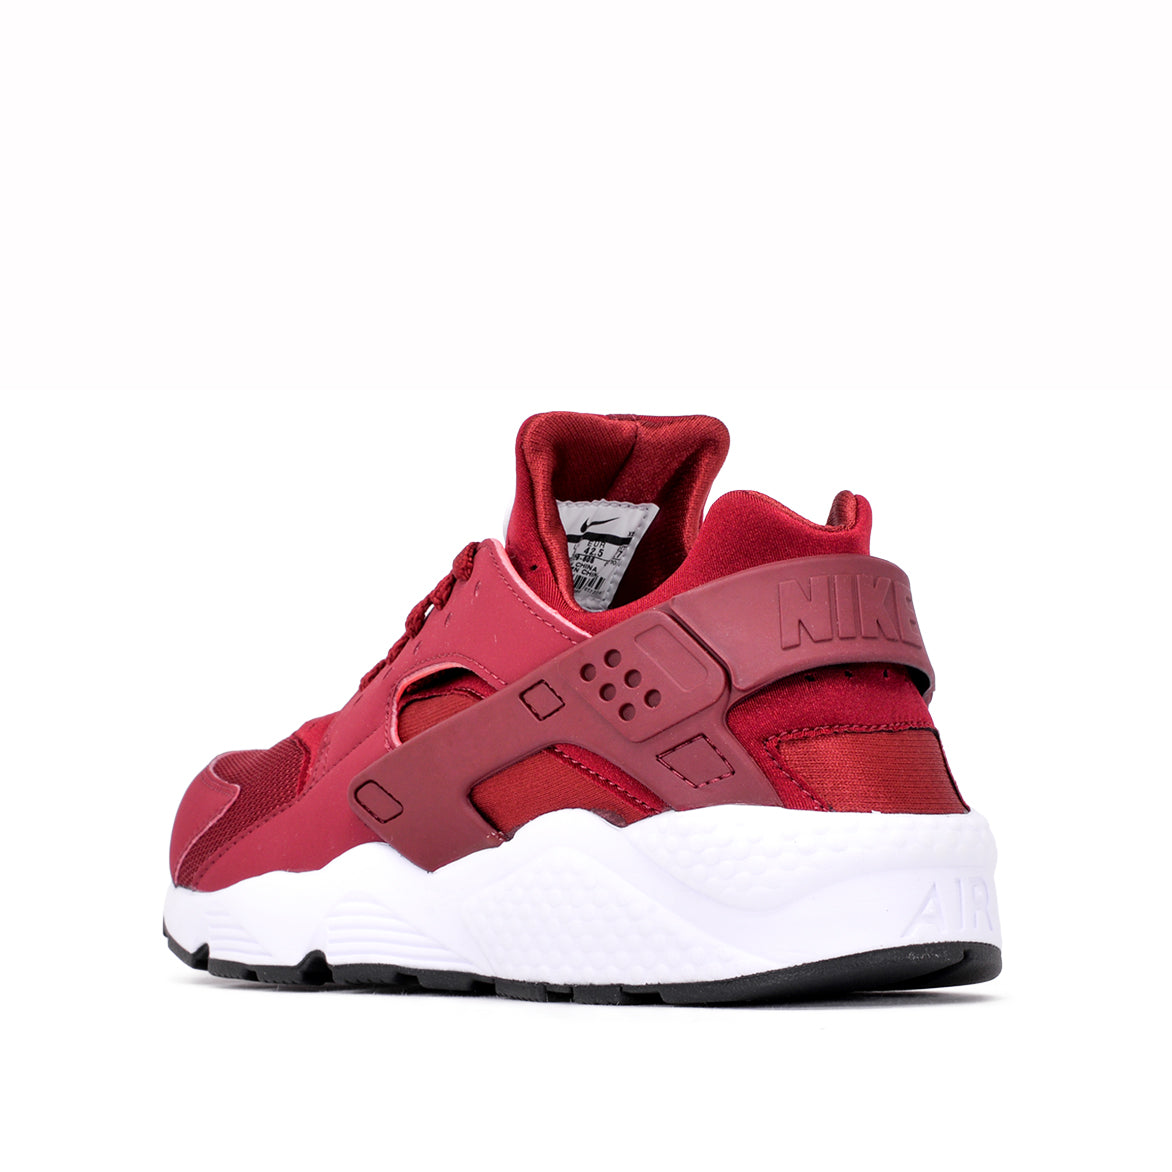 AIR HUARACHE RUN - TEAM RED